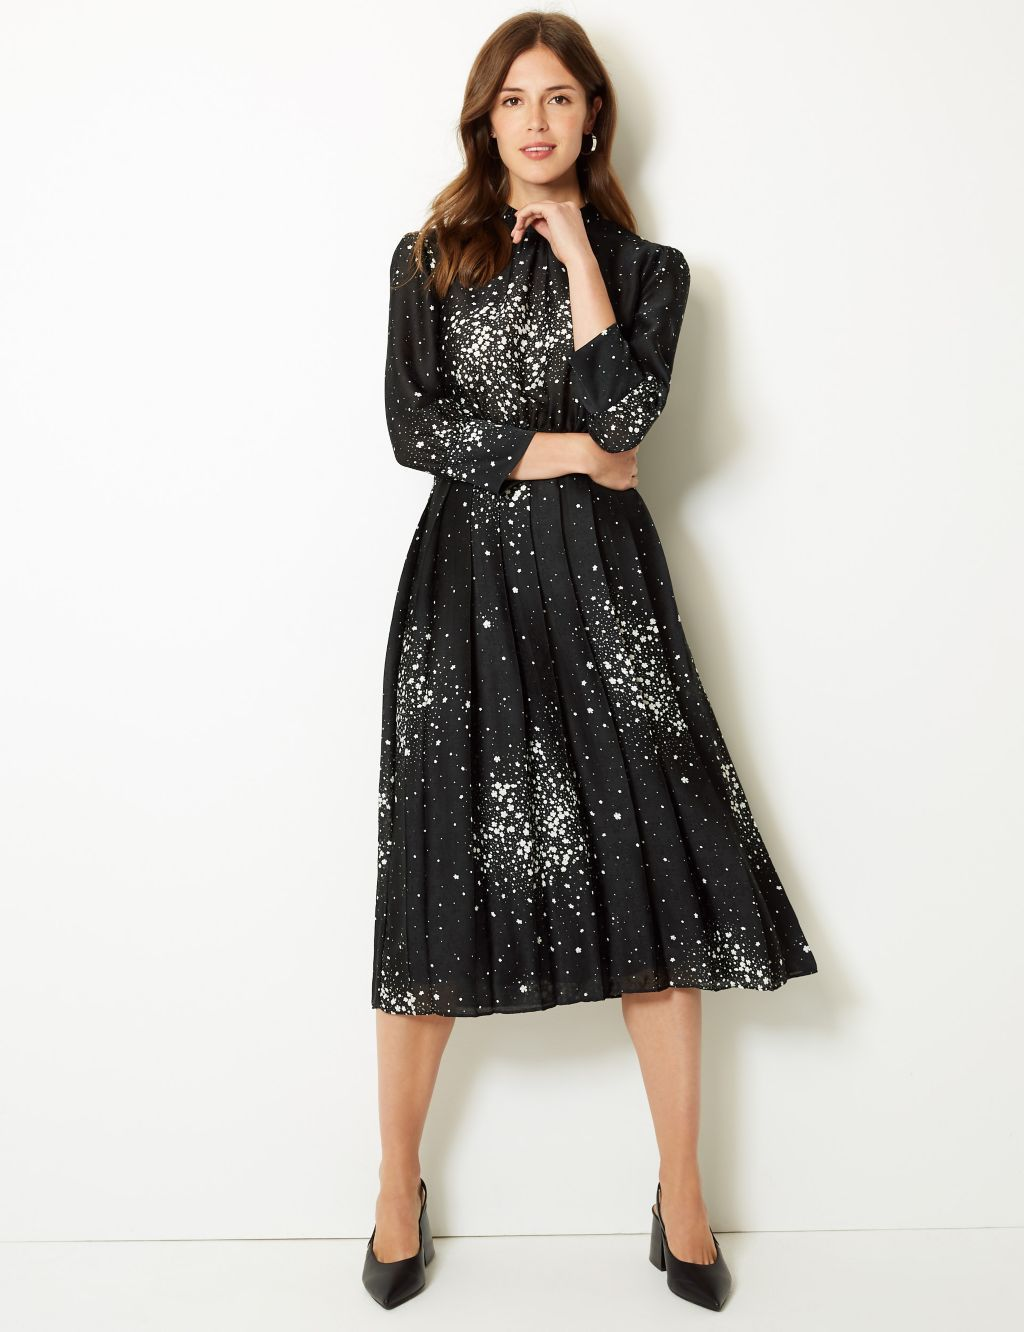 88bd0ac610a30 21 Marks   Spencer dresses you can t buy in store